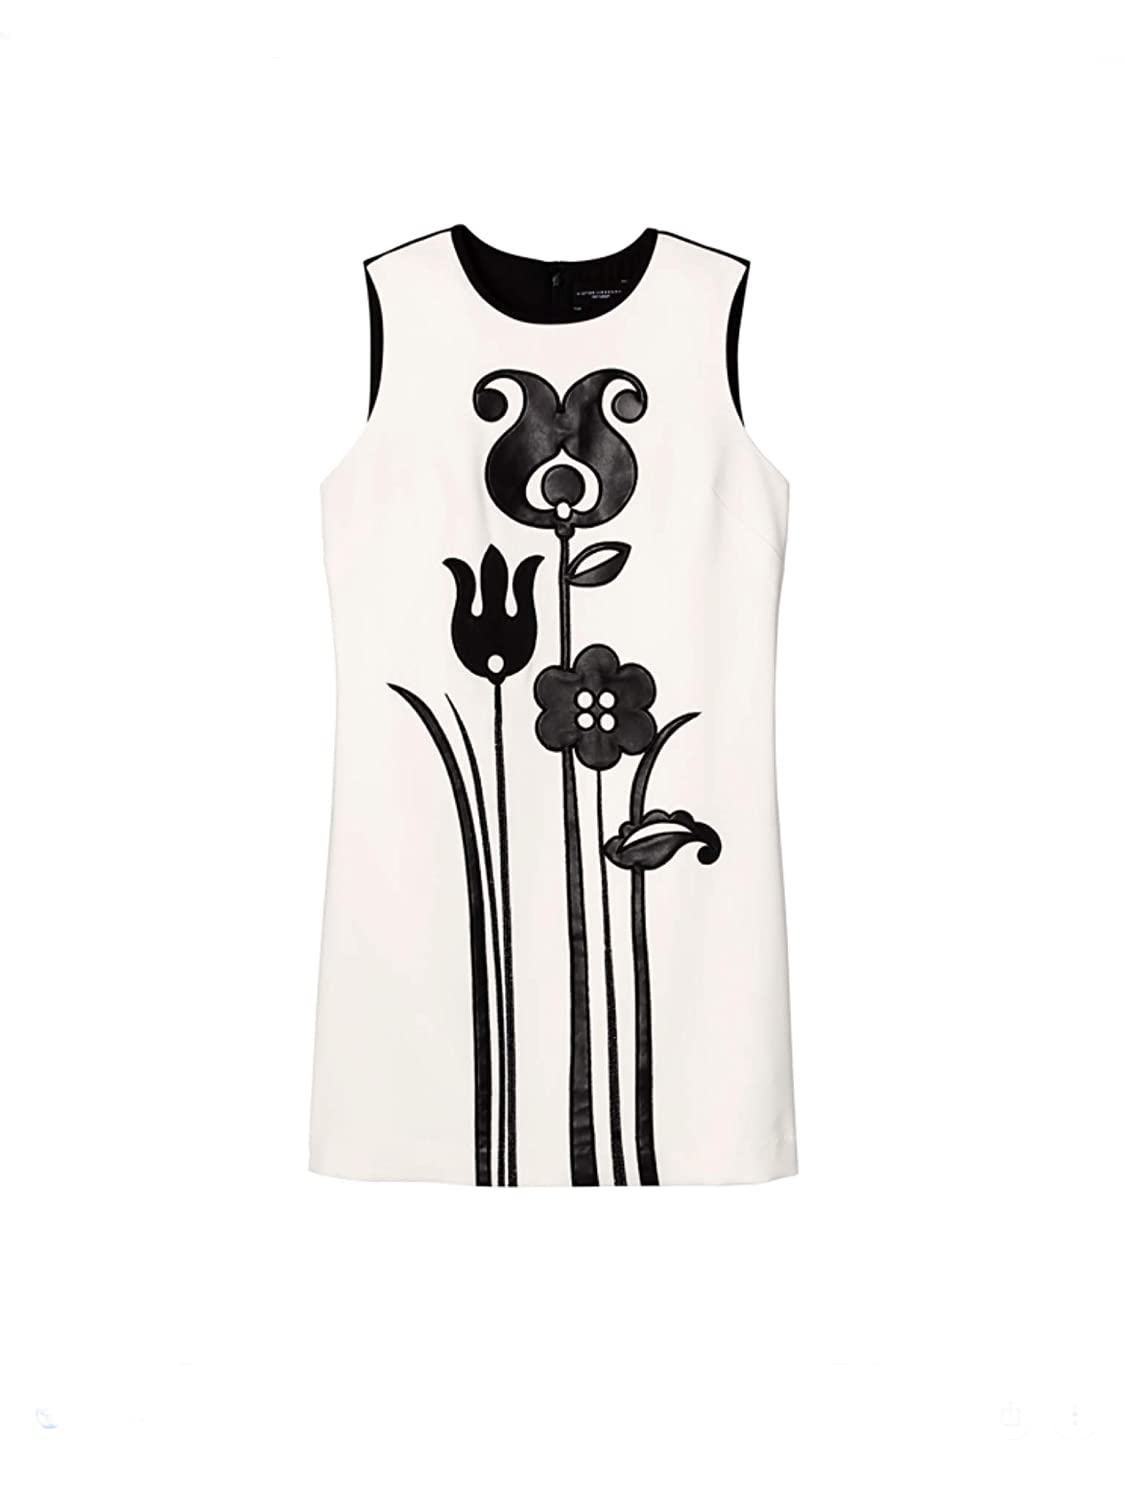 1960s Mad Men Dresses and Clothing Styles Victoria Beckham Womens Black and White Mod Shift Tulip Applique Dress $29.95 AT vintagedancer.com